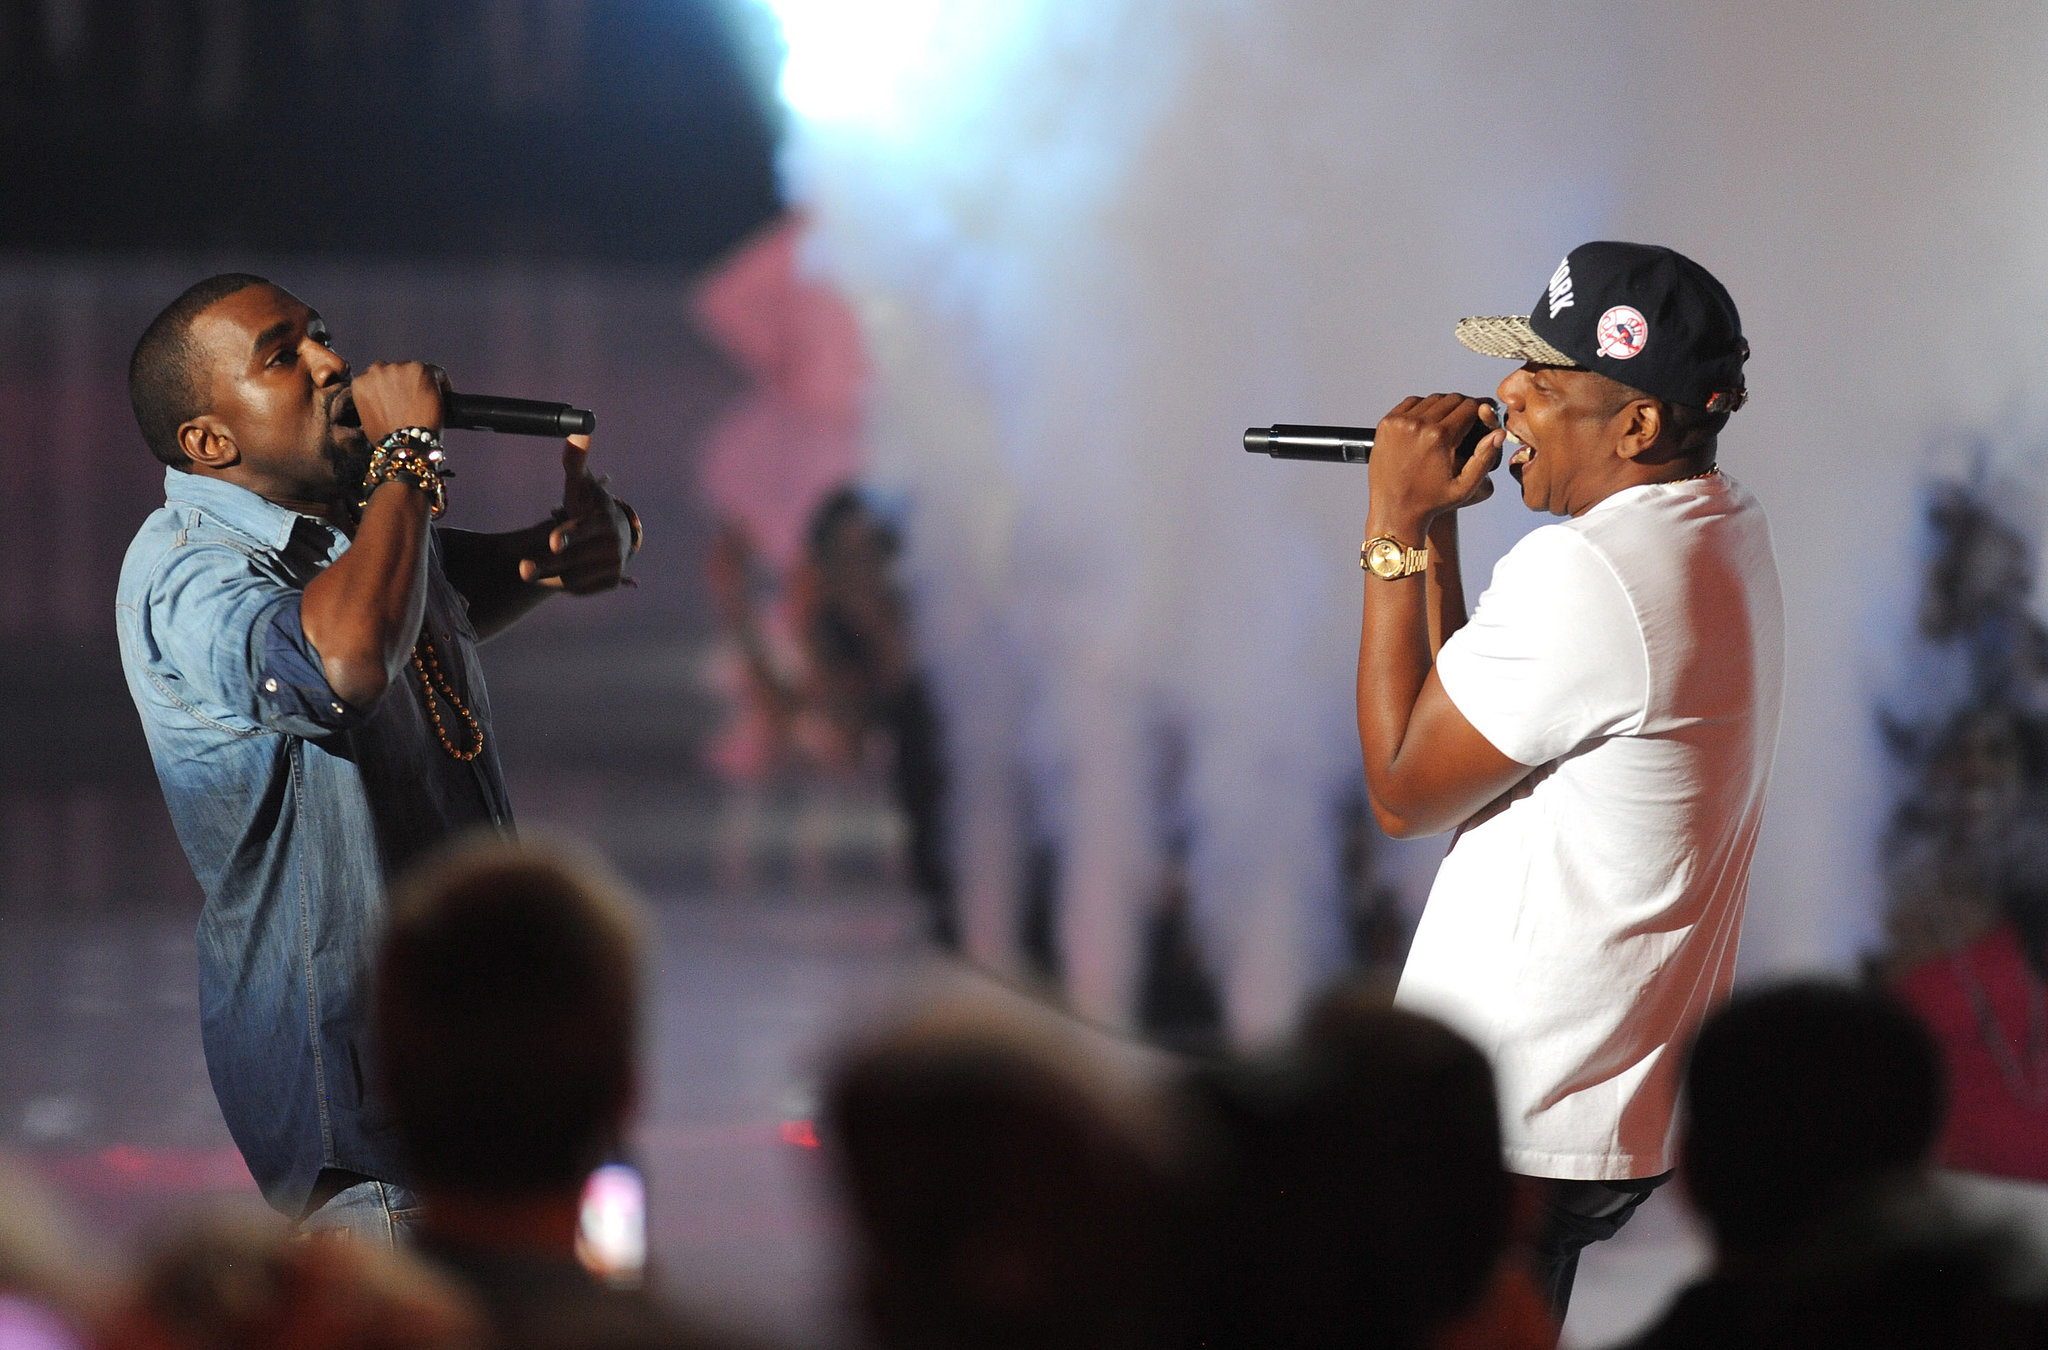 Jay-Z and Kanye West performed together at the show in 2011.